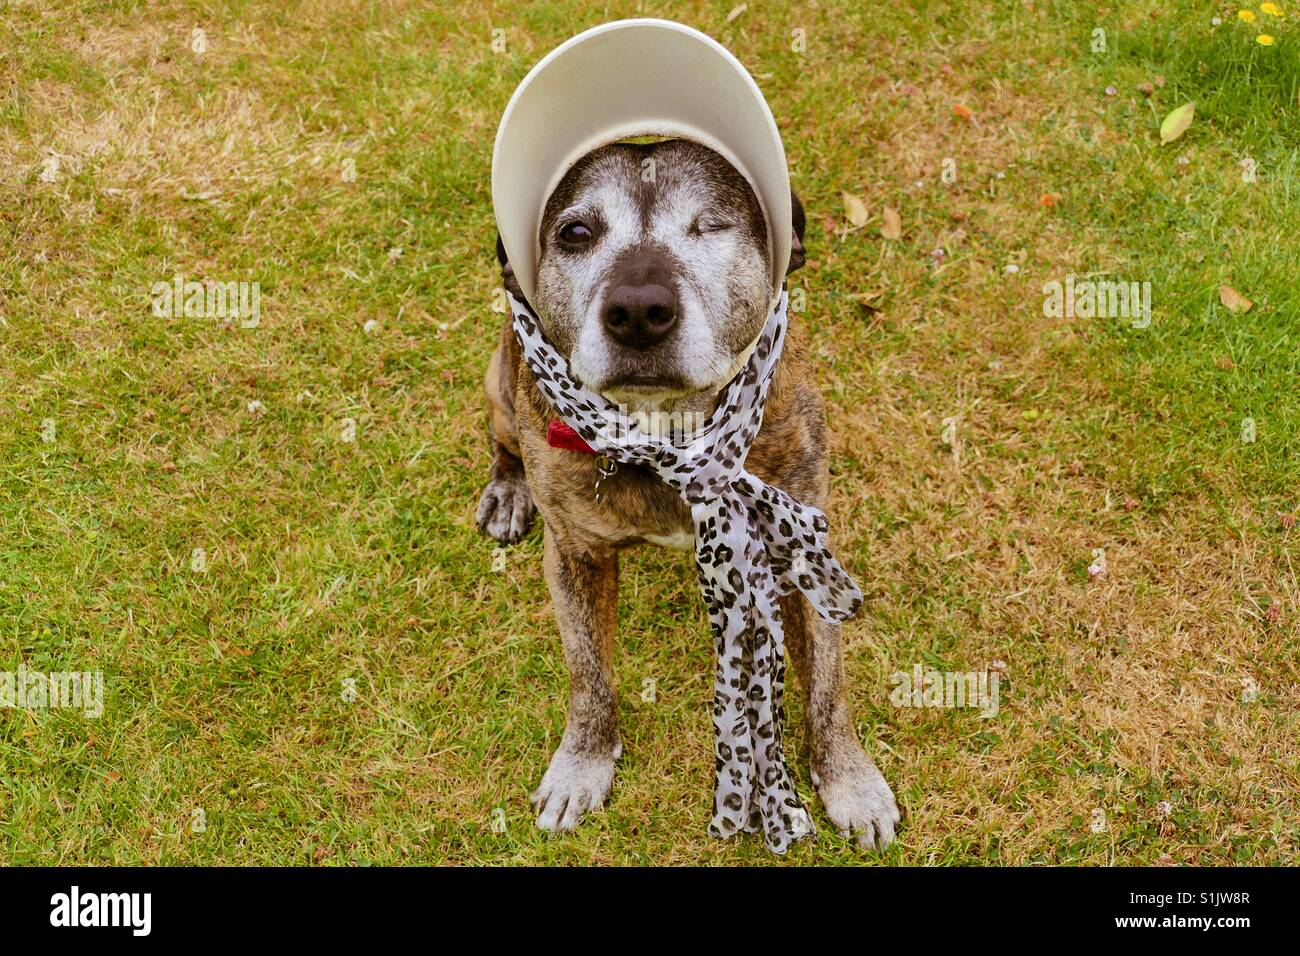 Staffie dog dressed up for summer - Stock Image